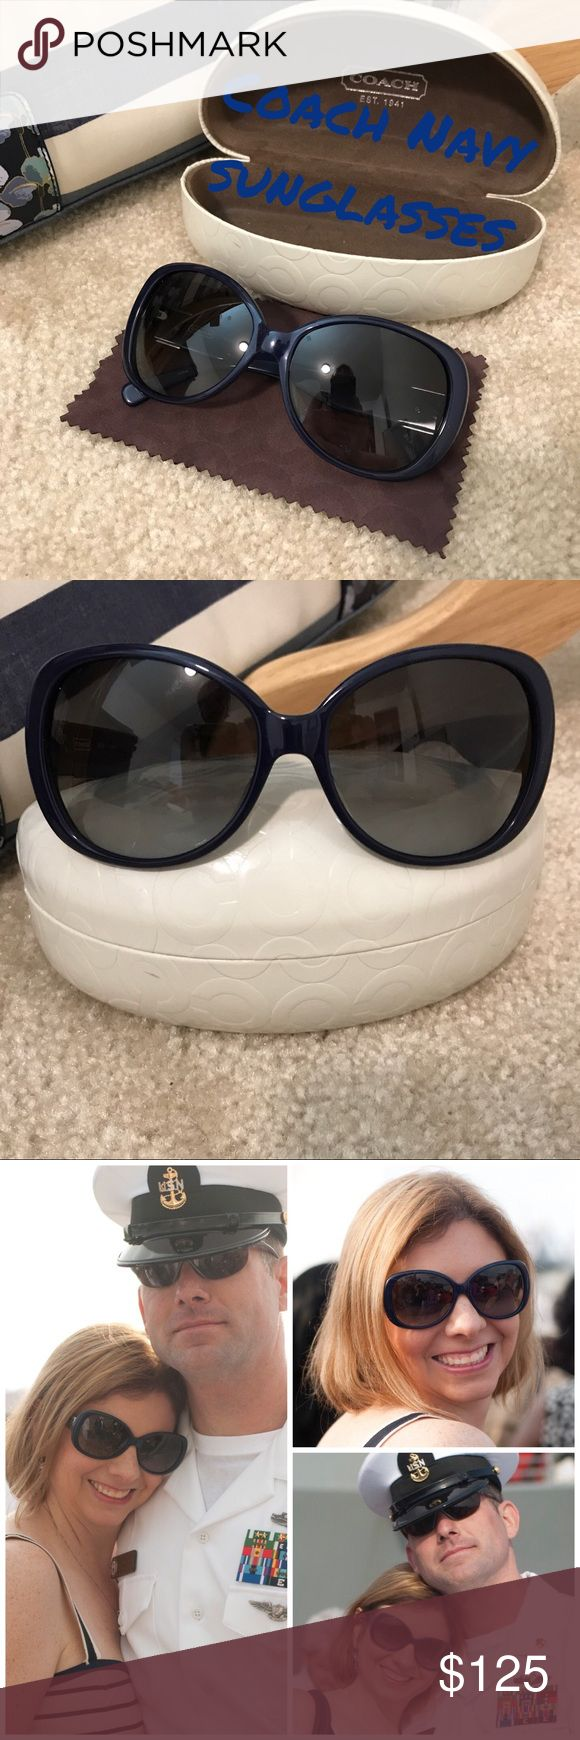 Coach sunglasses 🕶 Navy Authentic Coach sunglasses style #S2026 Navy..EUC..lenses are gray gradient, free from scratches..comes with original coach lens wipe & white hard coach case (there is a small mark on front of case and is shown in close up pic and far away pic)..size in mm is 57 x 16 x 130 (lens length x nose bridge length x temple length). Pics of me wearing them to show how they fit on. (2/20/18) Coach Accessories Sunglasses